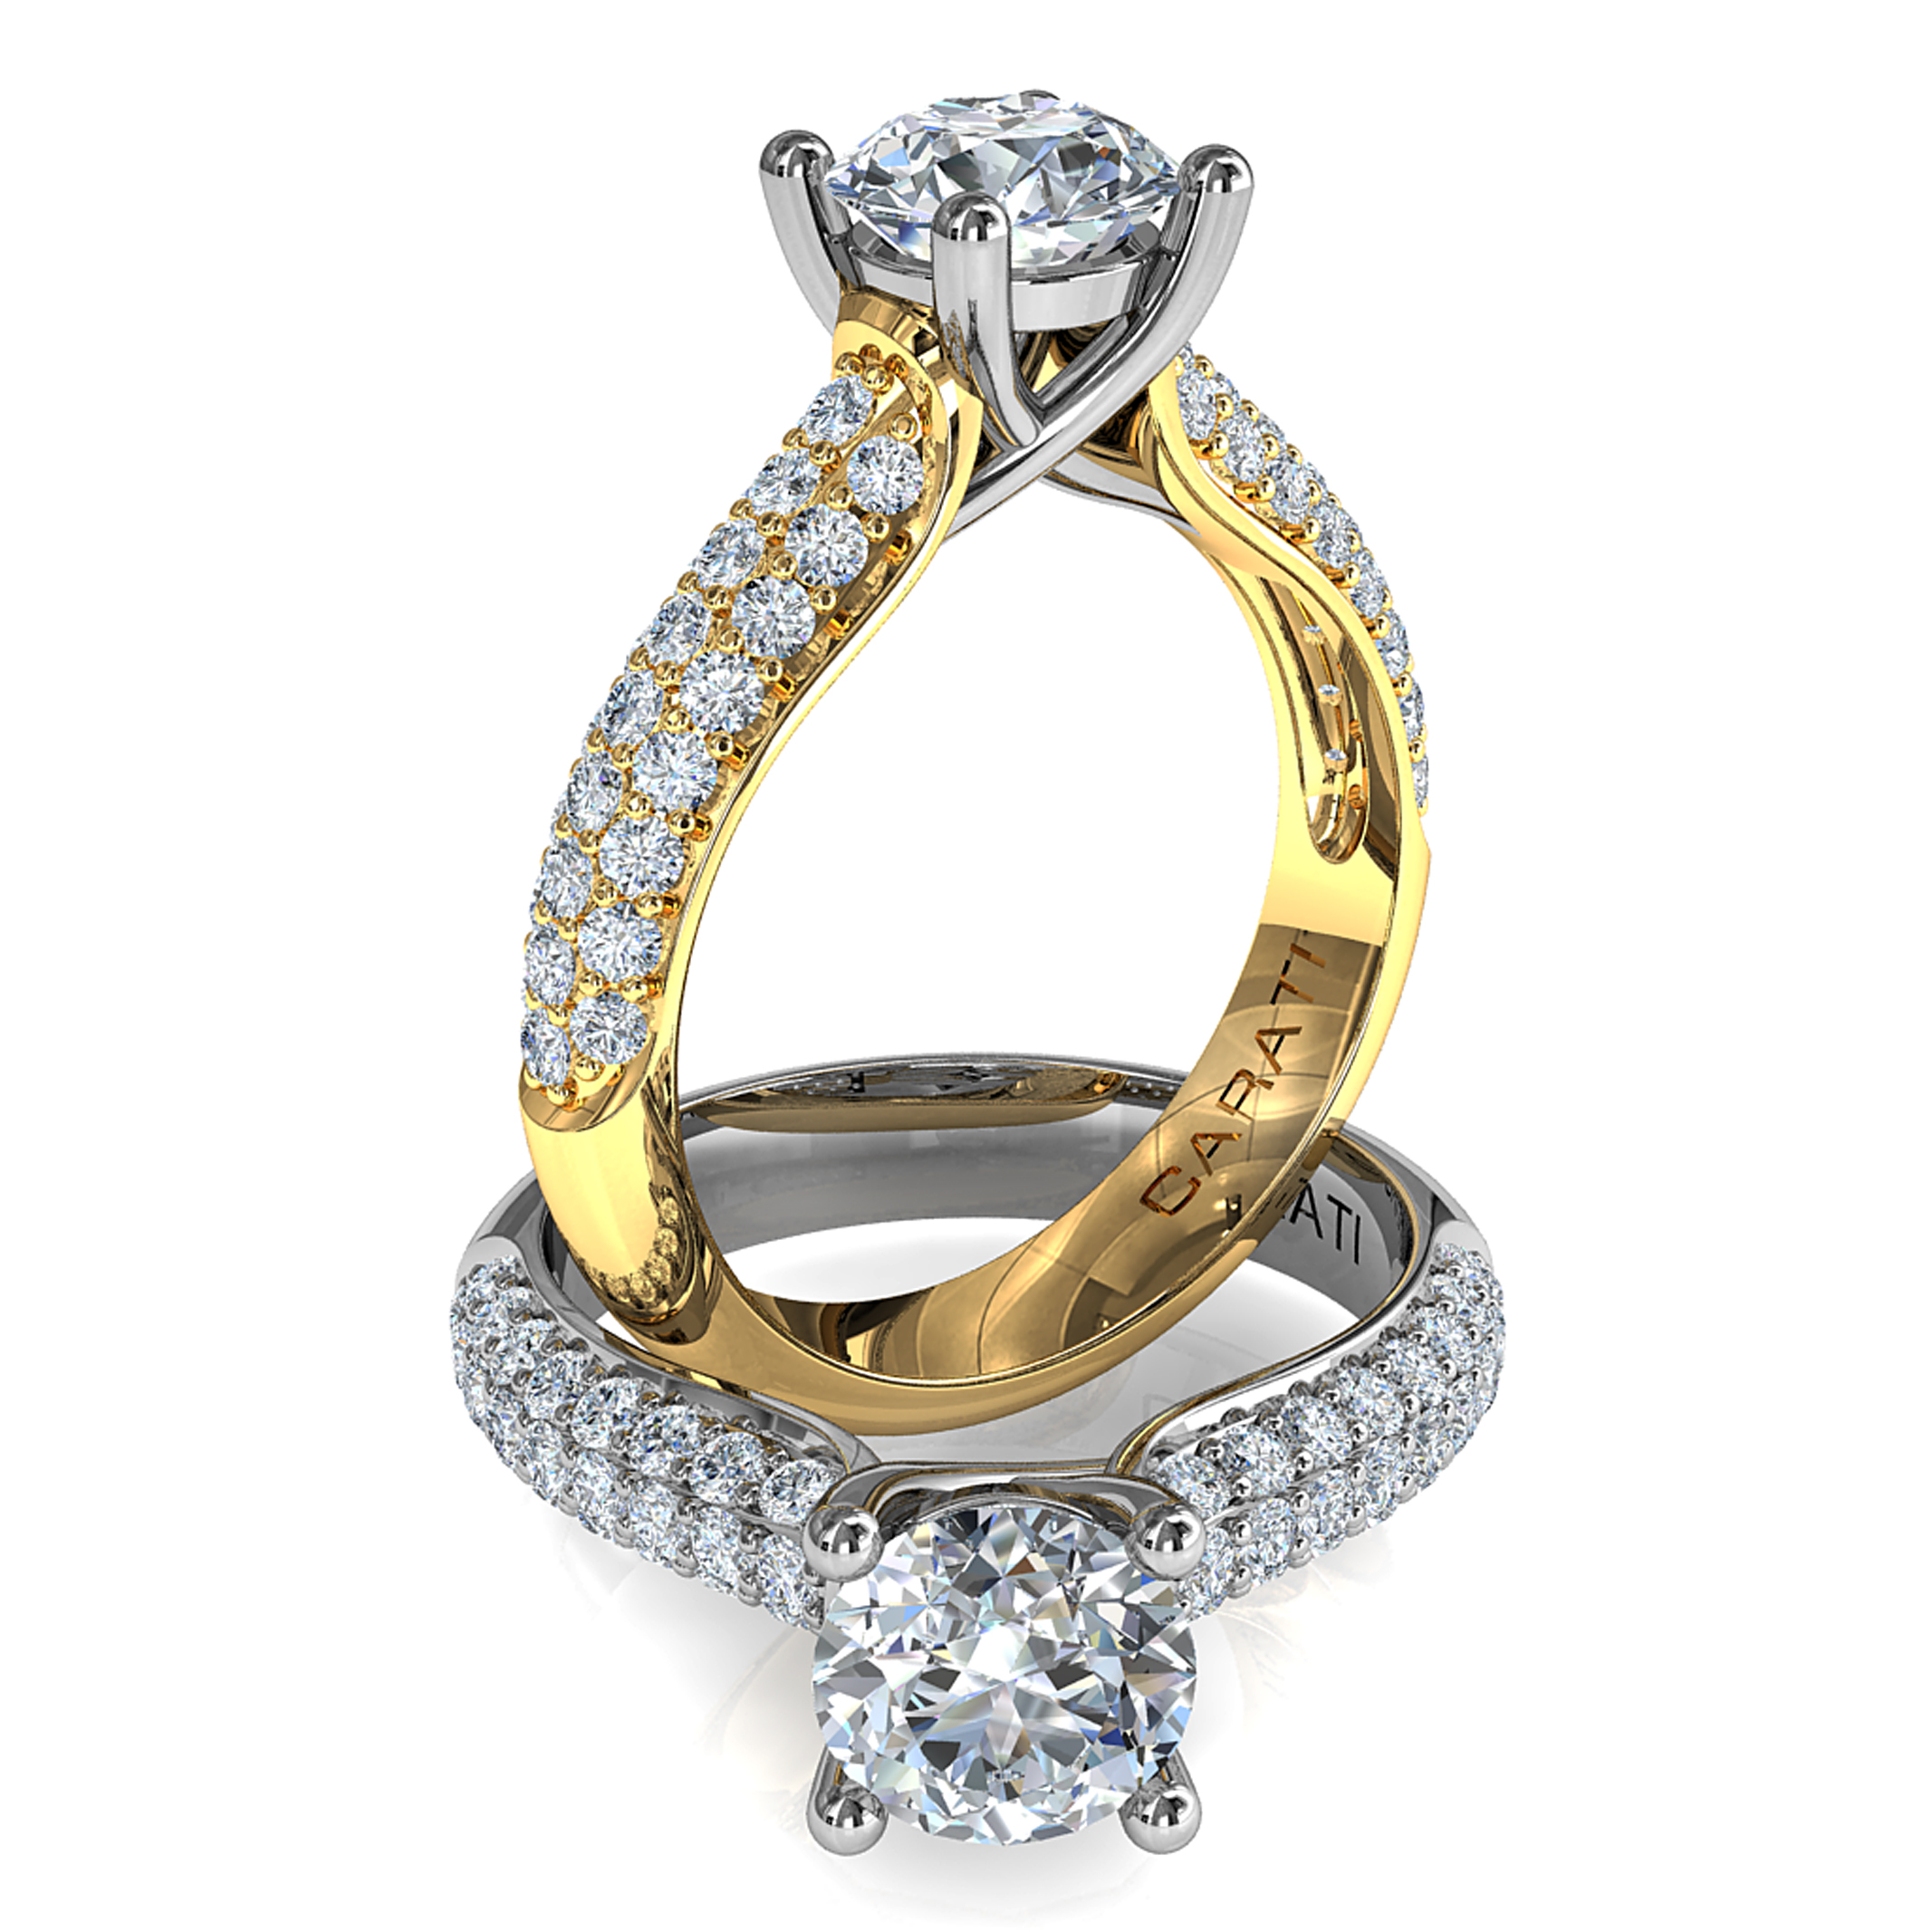 Round Brilliant Cut Solitaire Diamond Engagement Ring, 4 Button Claws Set on a Wide Three Row Pavé Band with Classic Support Bar Undersetting.